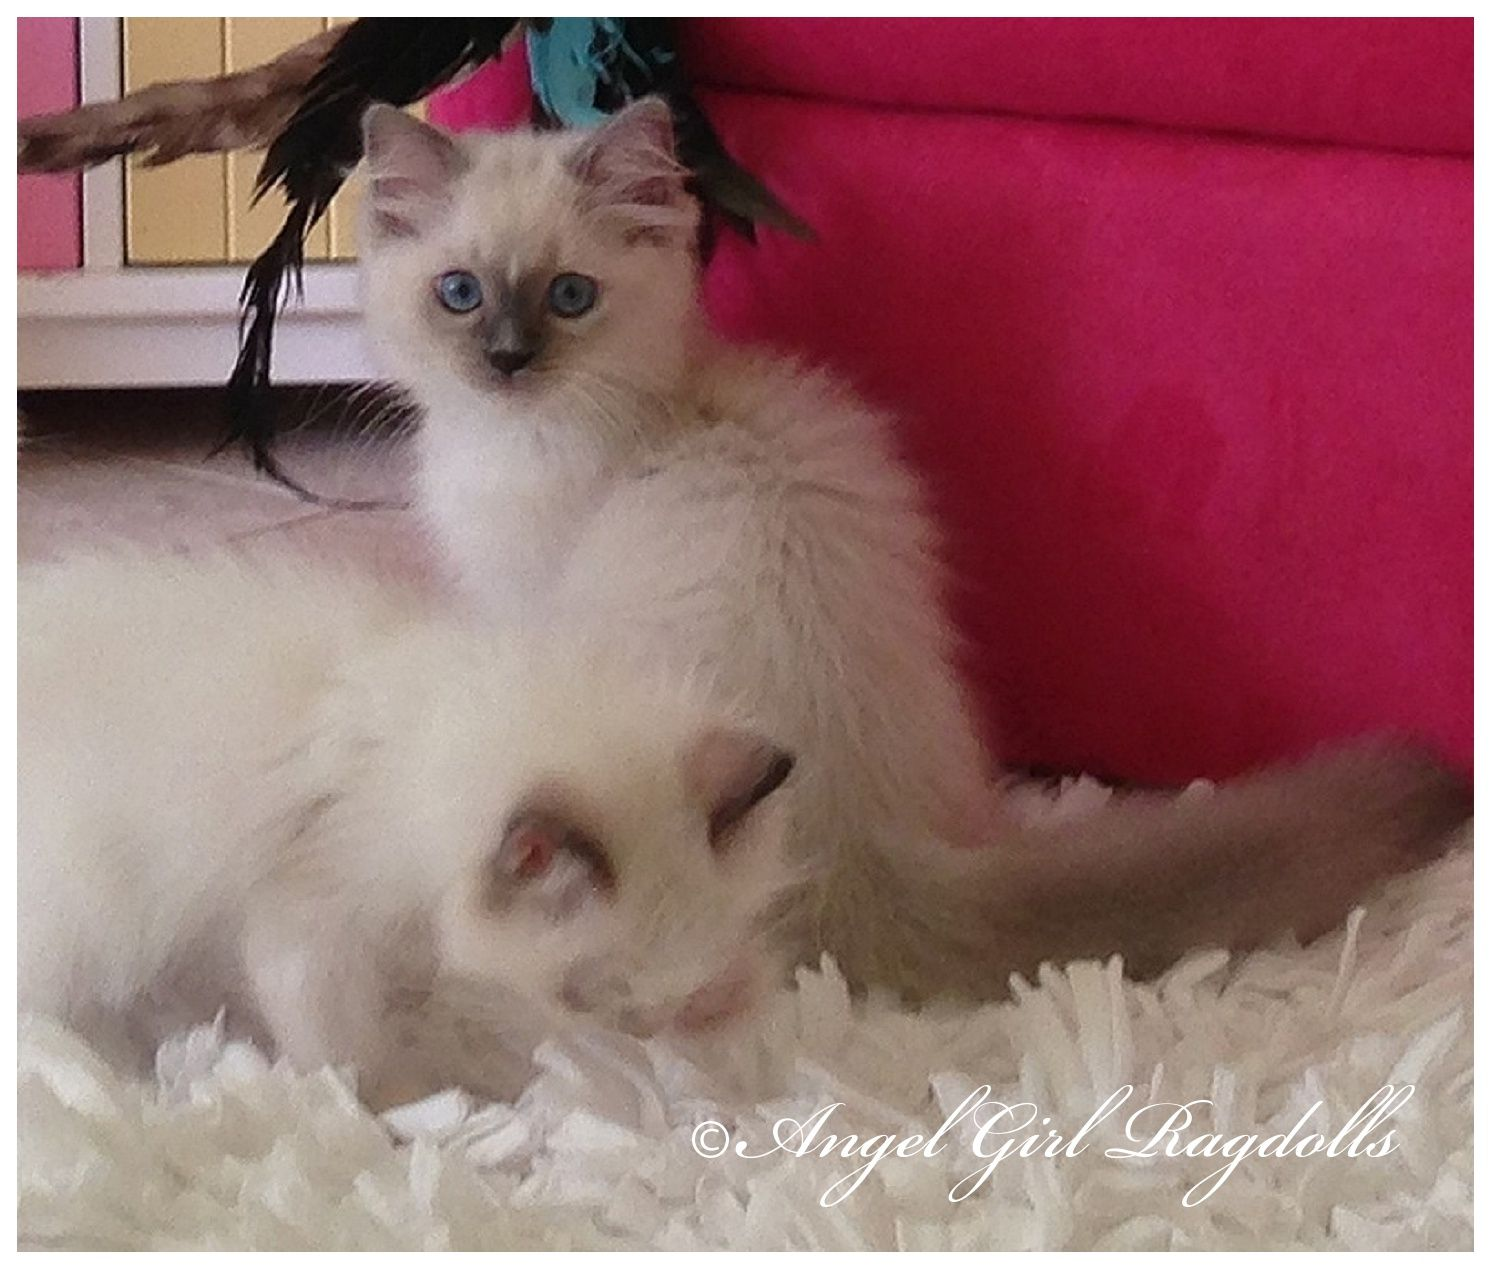 RAGDOLL KITTENS AVAILABLE FOR SALE BEAUTIFUL FLOPPY FLUFFY and